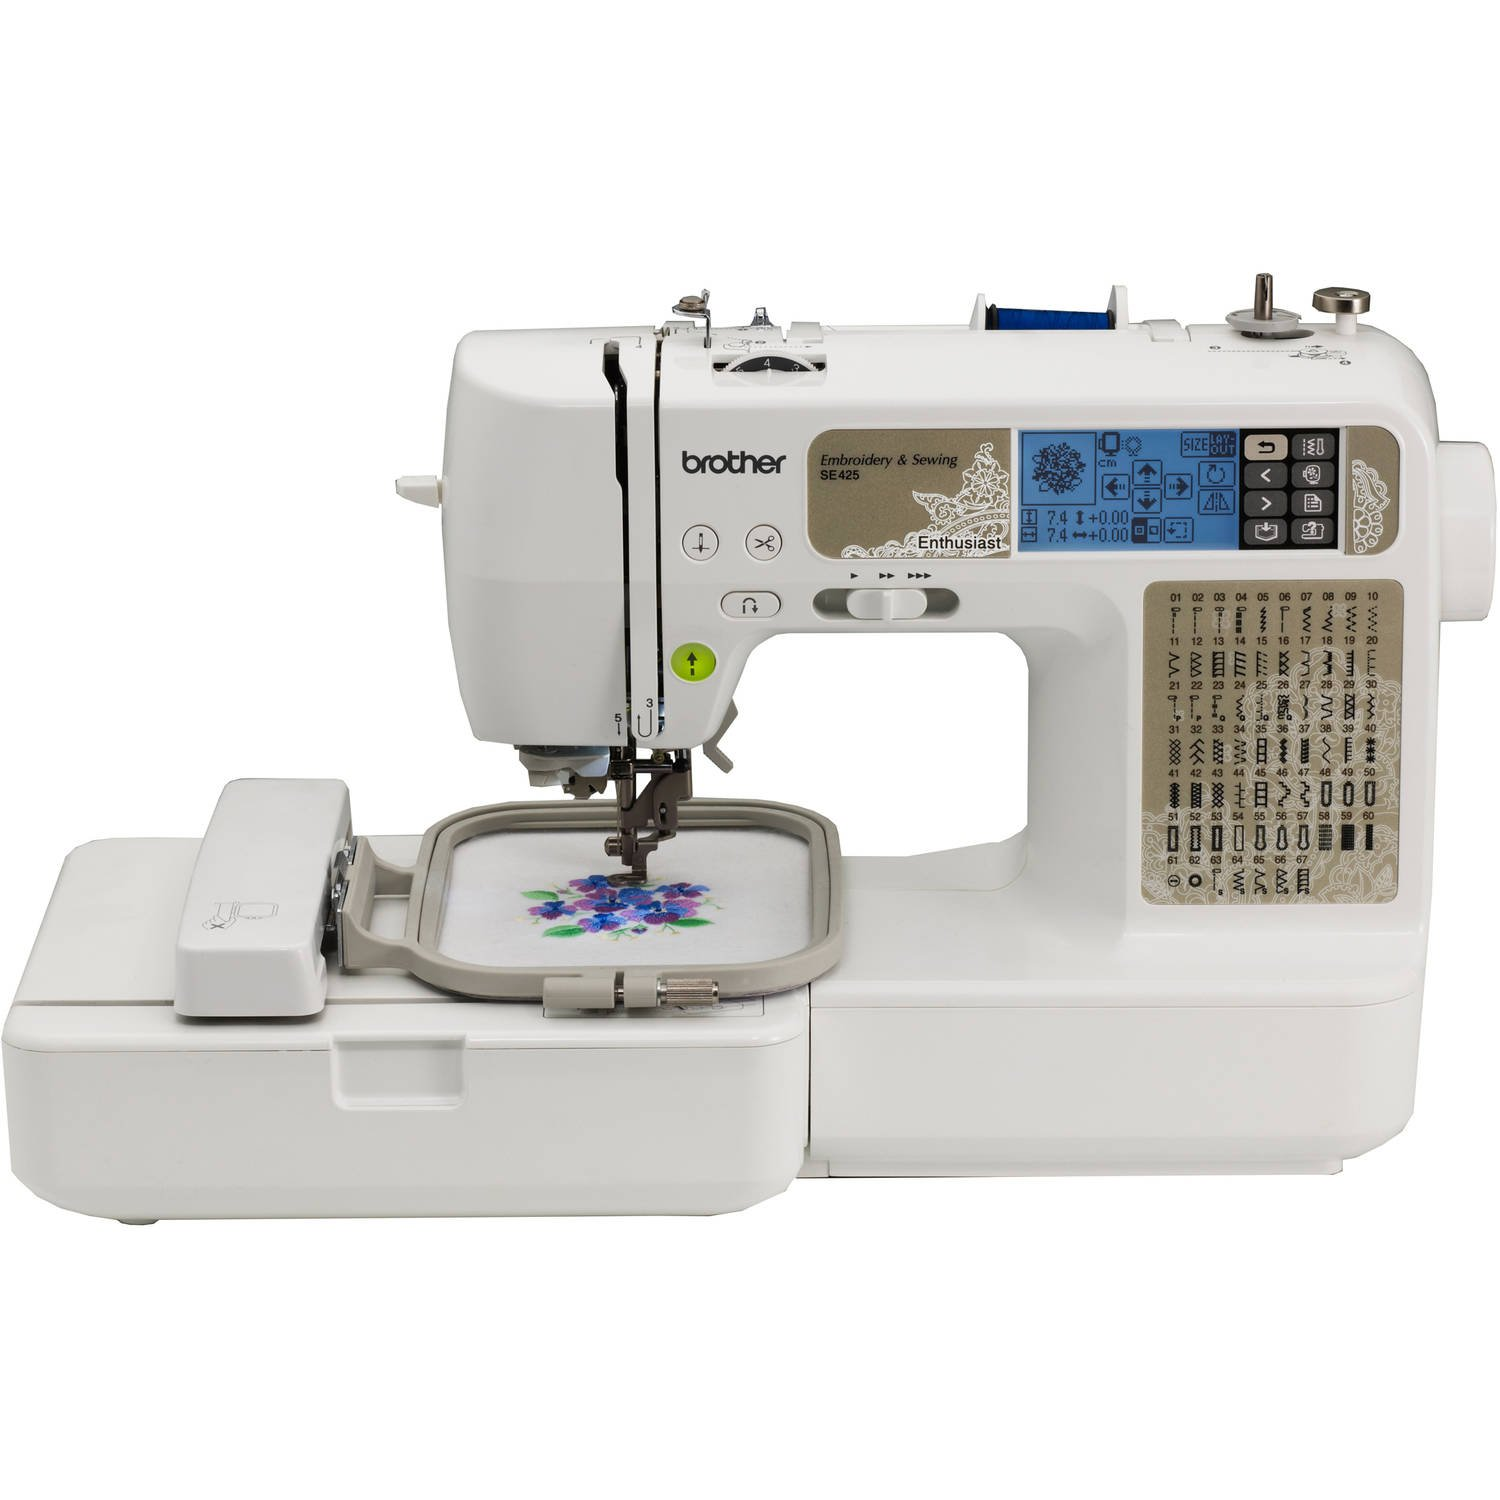 Amazon.com: Brother Sewing and Embroidery Machine, 67 Built-In Stitches  Model SE425